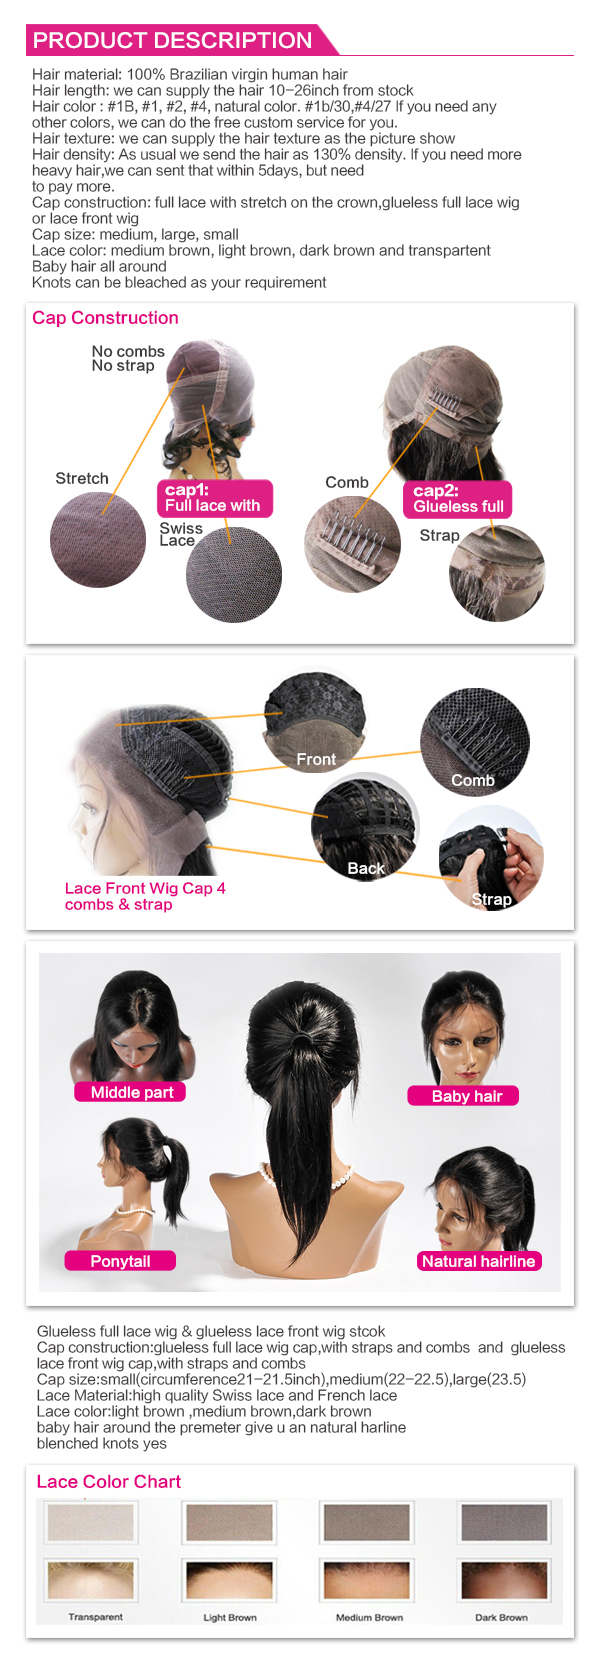 2-2-1product discription wig.jpg